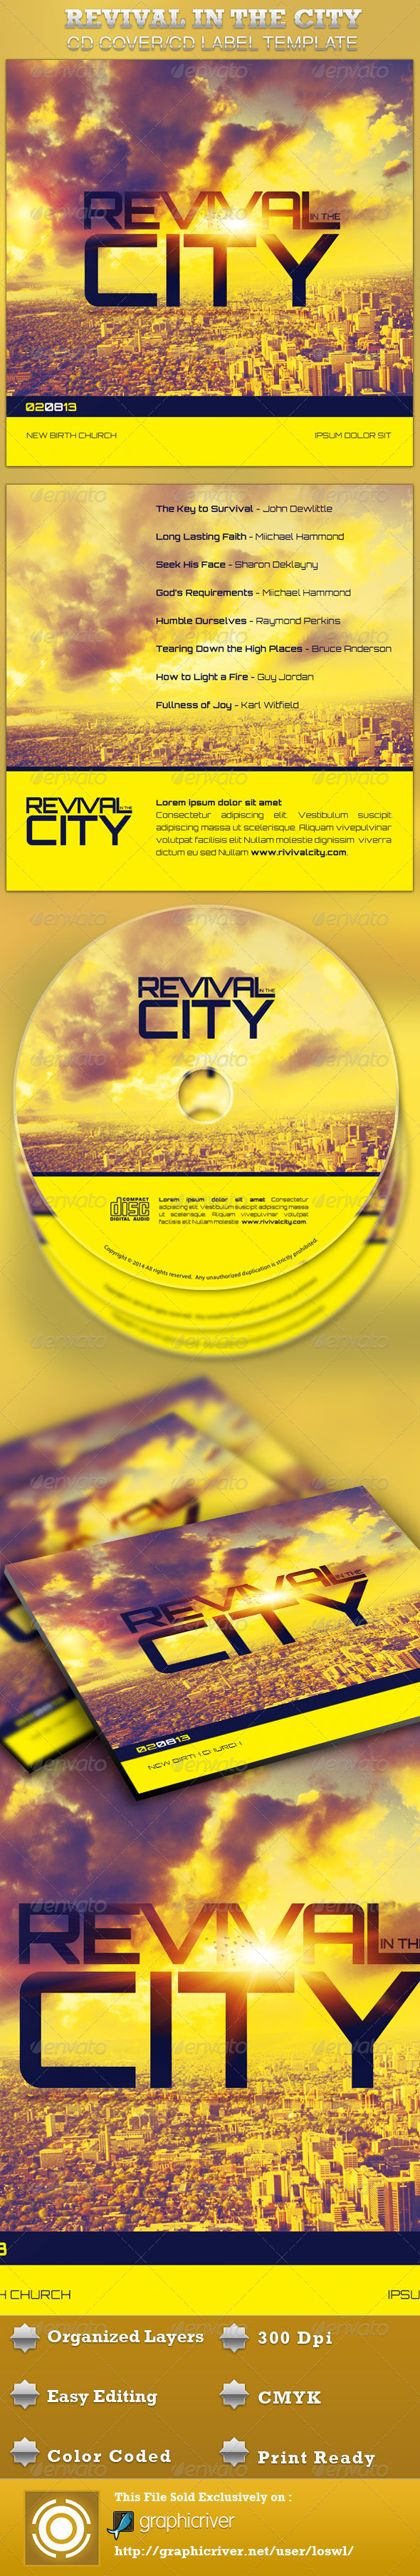 Revival in the City CD Artwork Template - CD & DVD artwork Print Templates